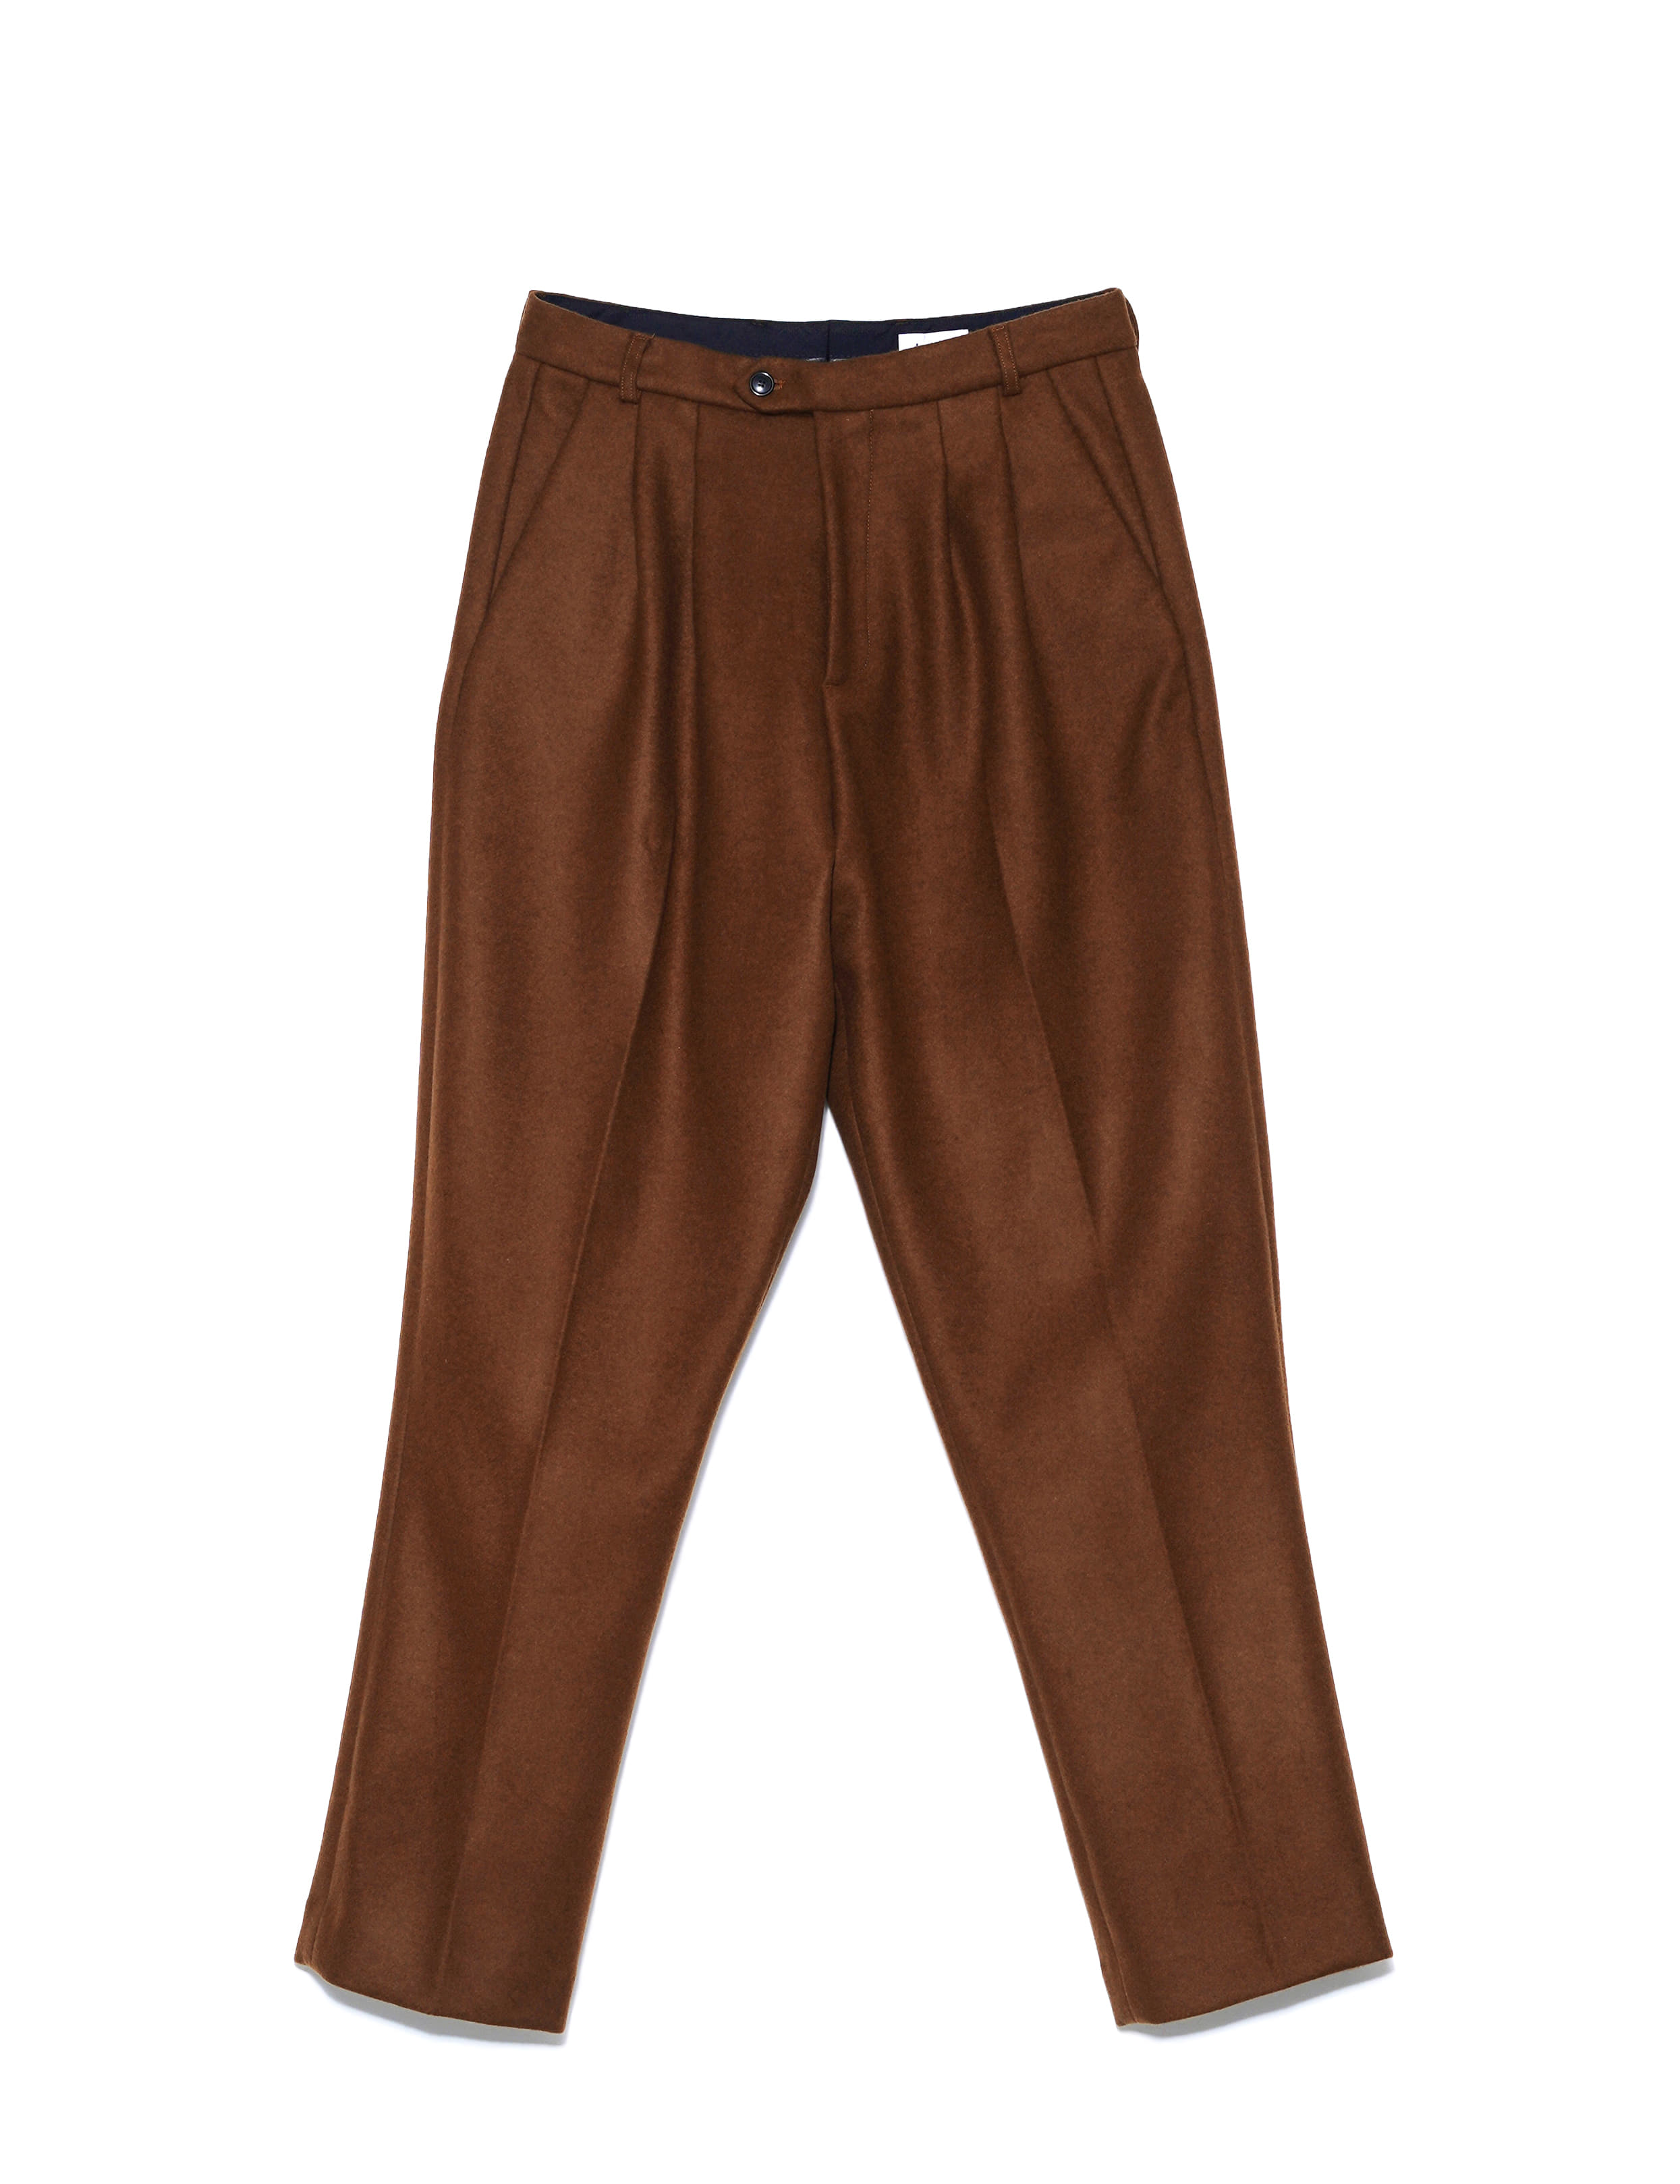 CARTER TROUSERS (TABACCO)